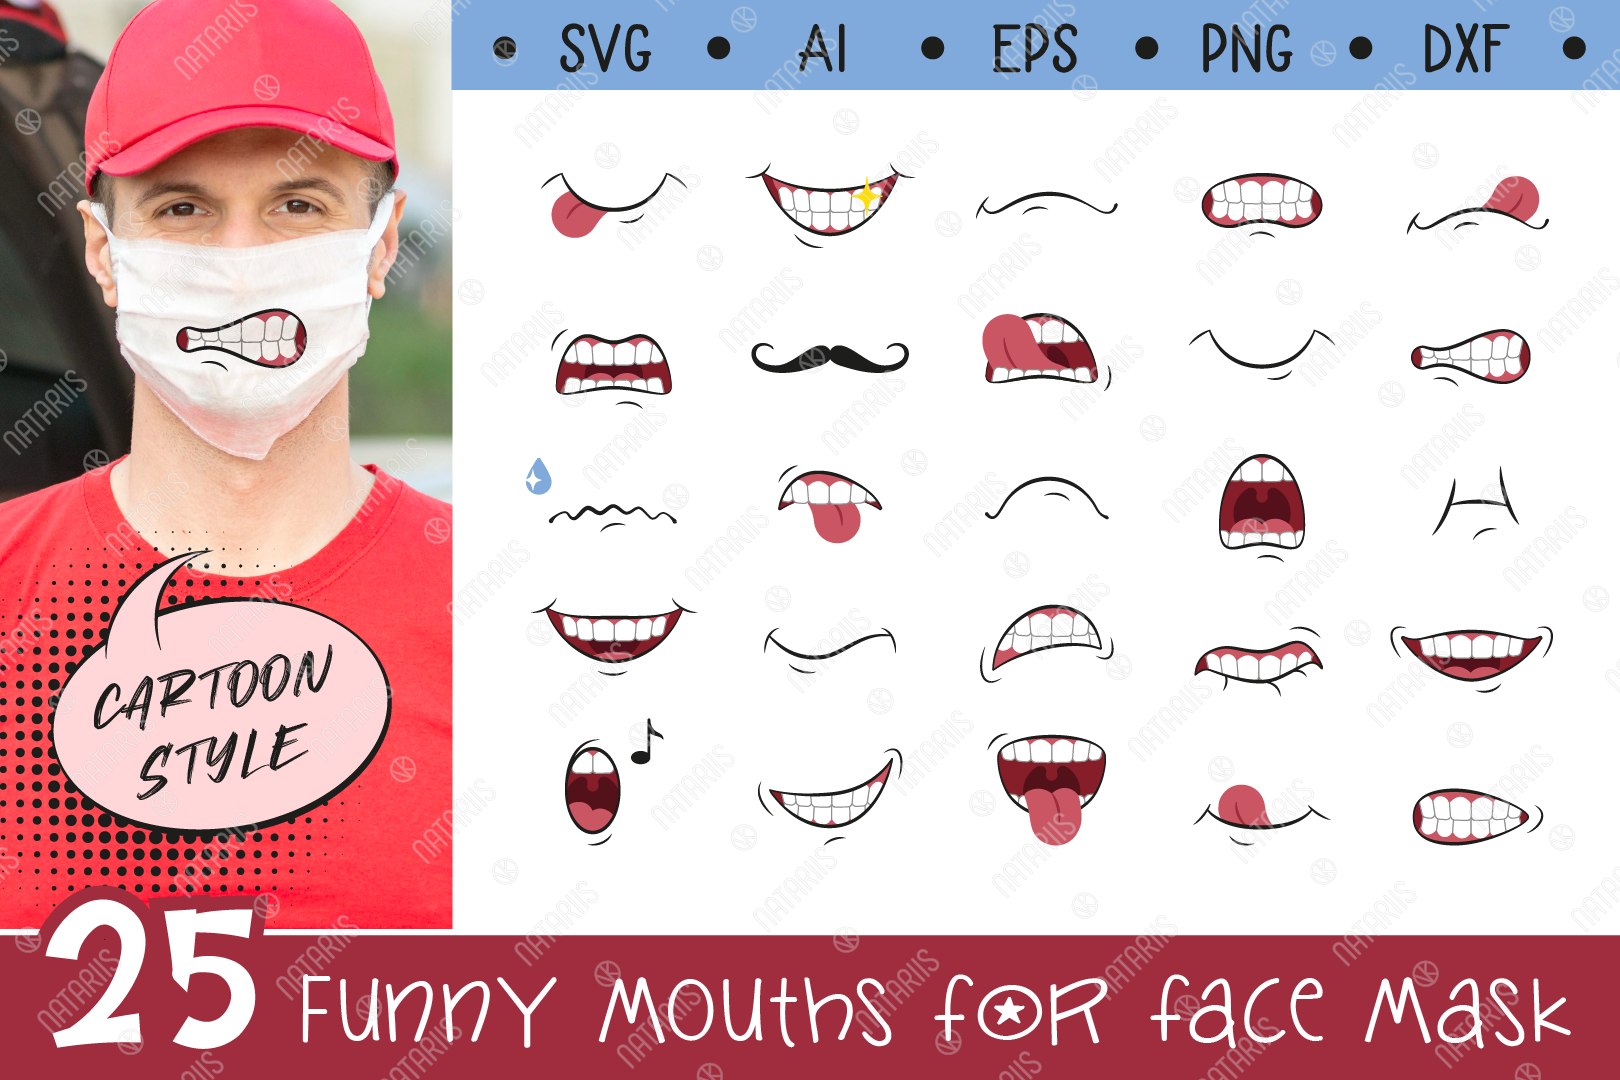 Download Free 25 Funny Mouths For Medical Face Mask Graphic By Natariis Studio for Cricut Explore, Silhouette and other cutting machines.